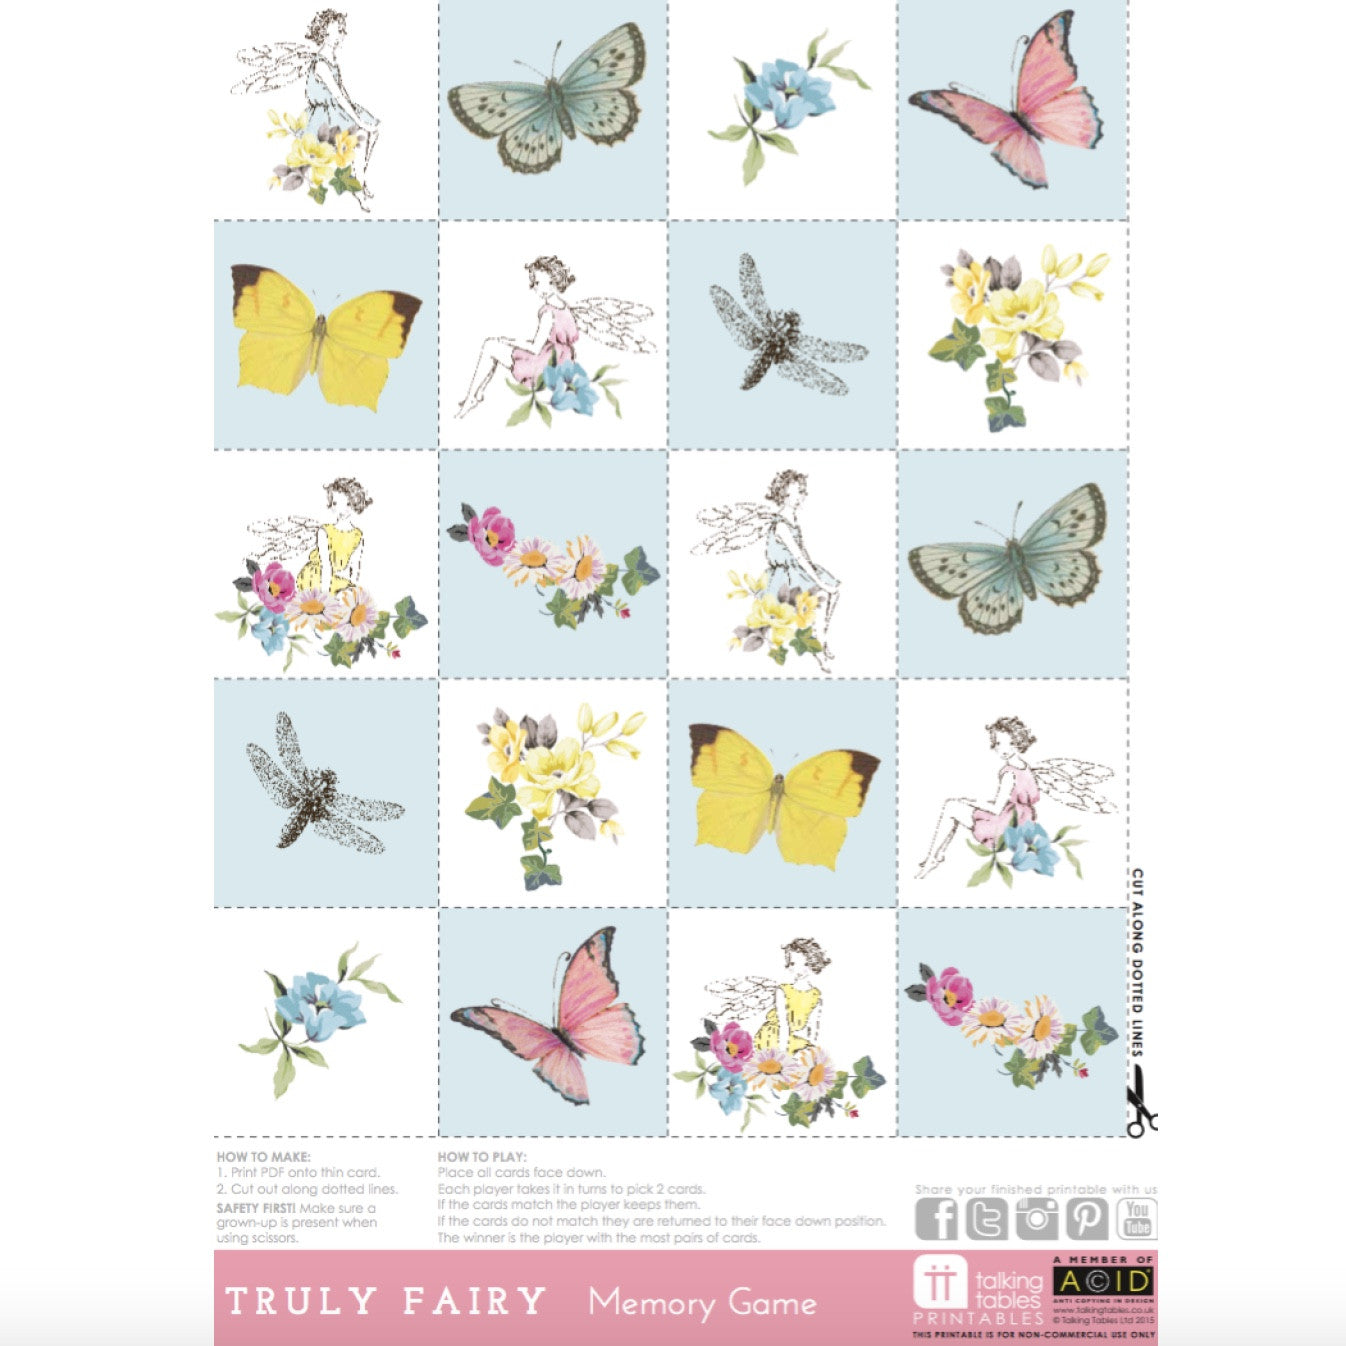 photograph about Printable Memory Cards identify Certainly Fairy\